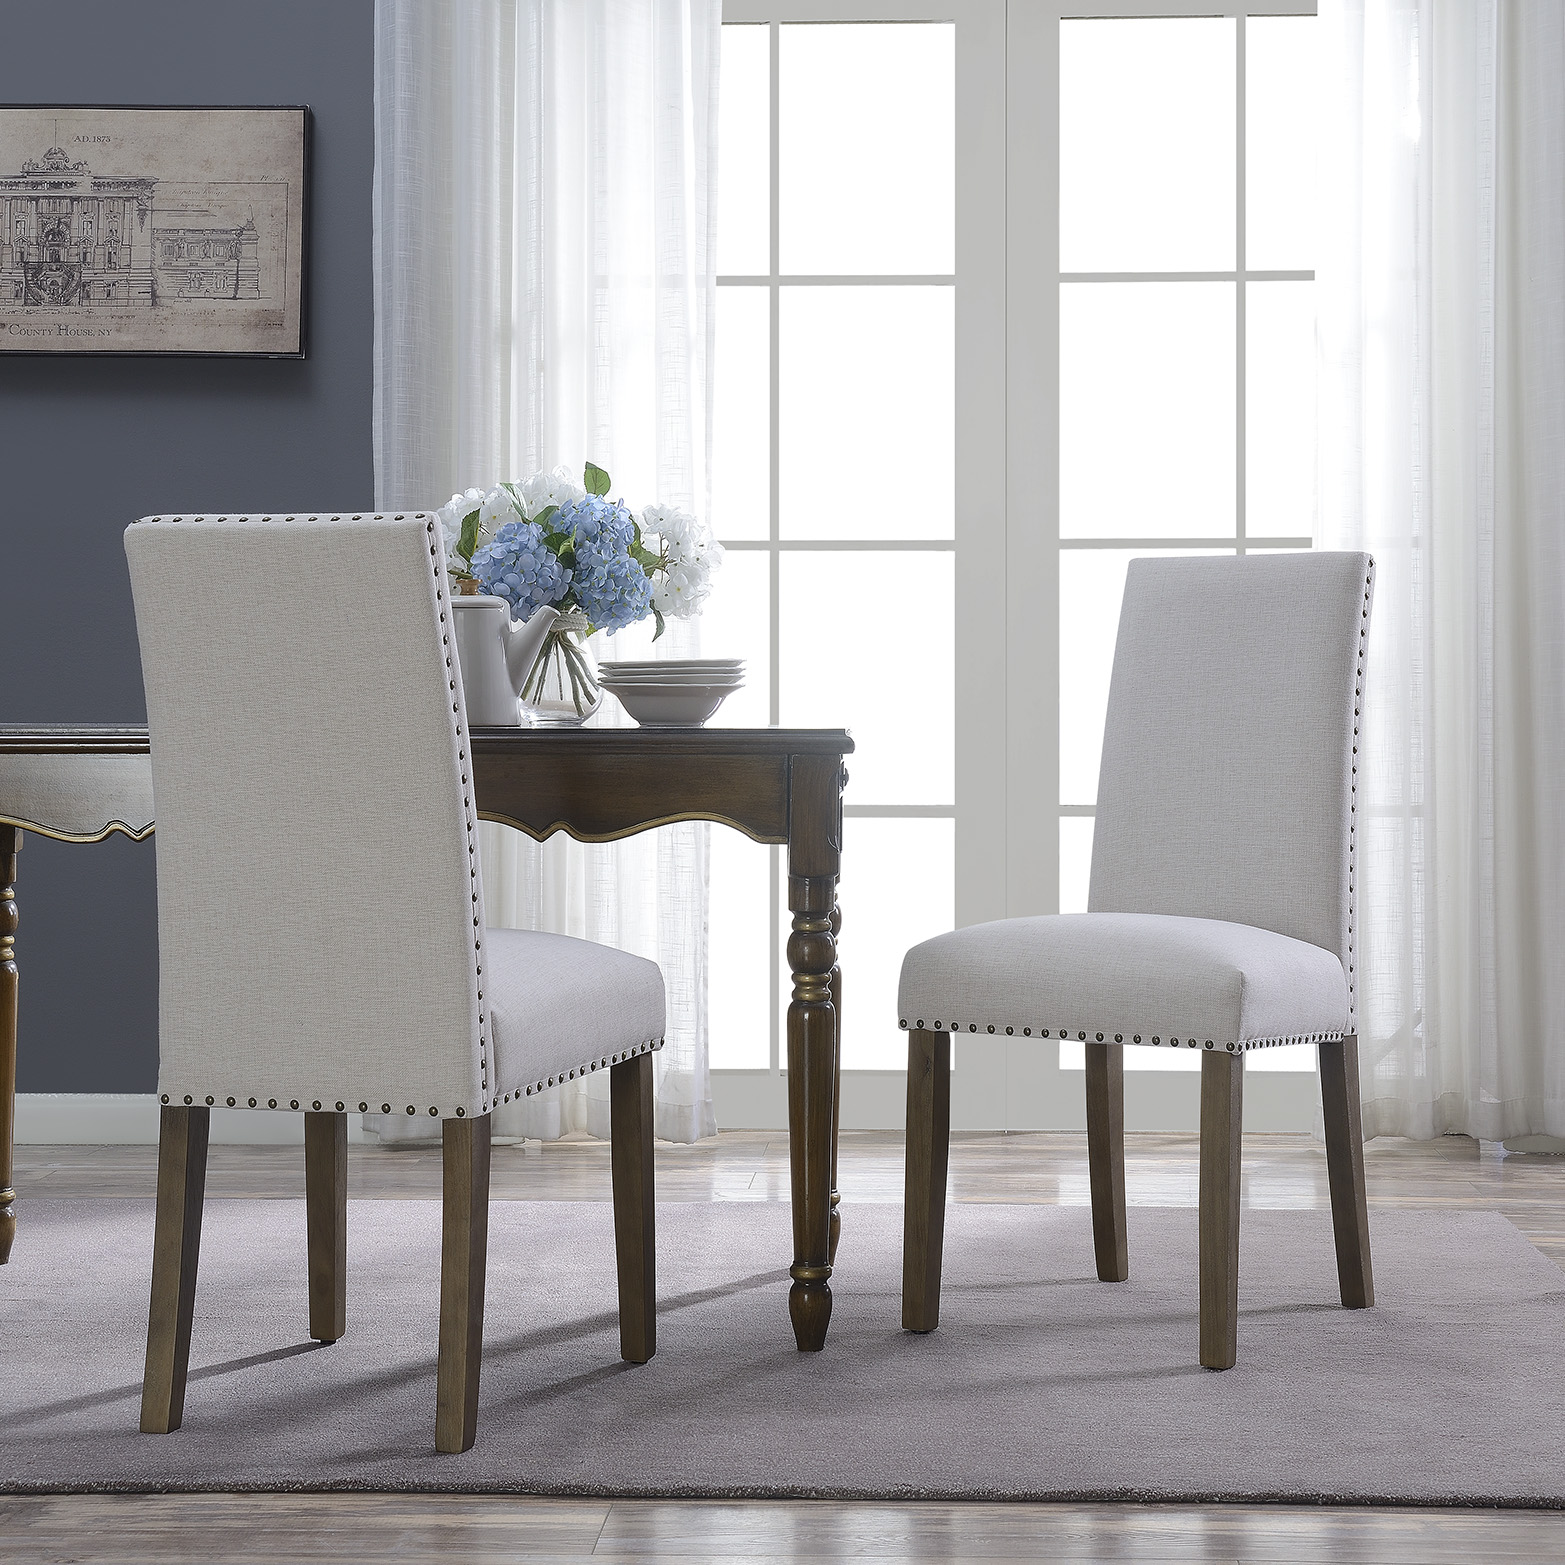 BELLEZE Set of (2) Dining Chairs Linen Armless Nailhead Trim Accent Elegant Side Chair Wooden Leg, Beige